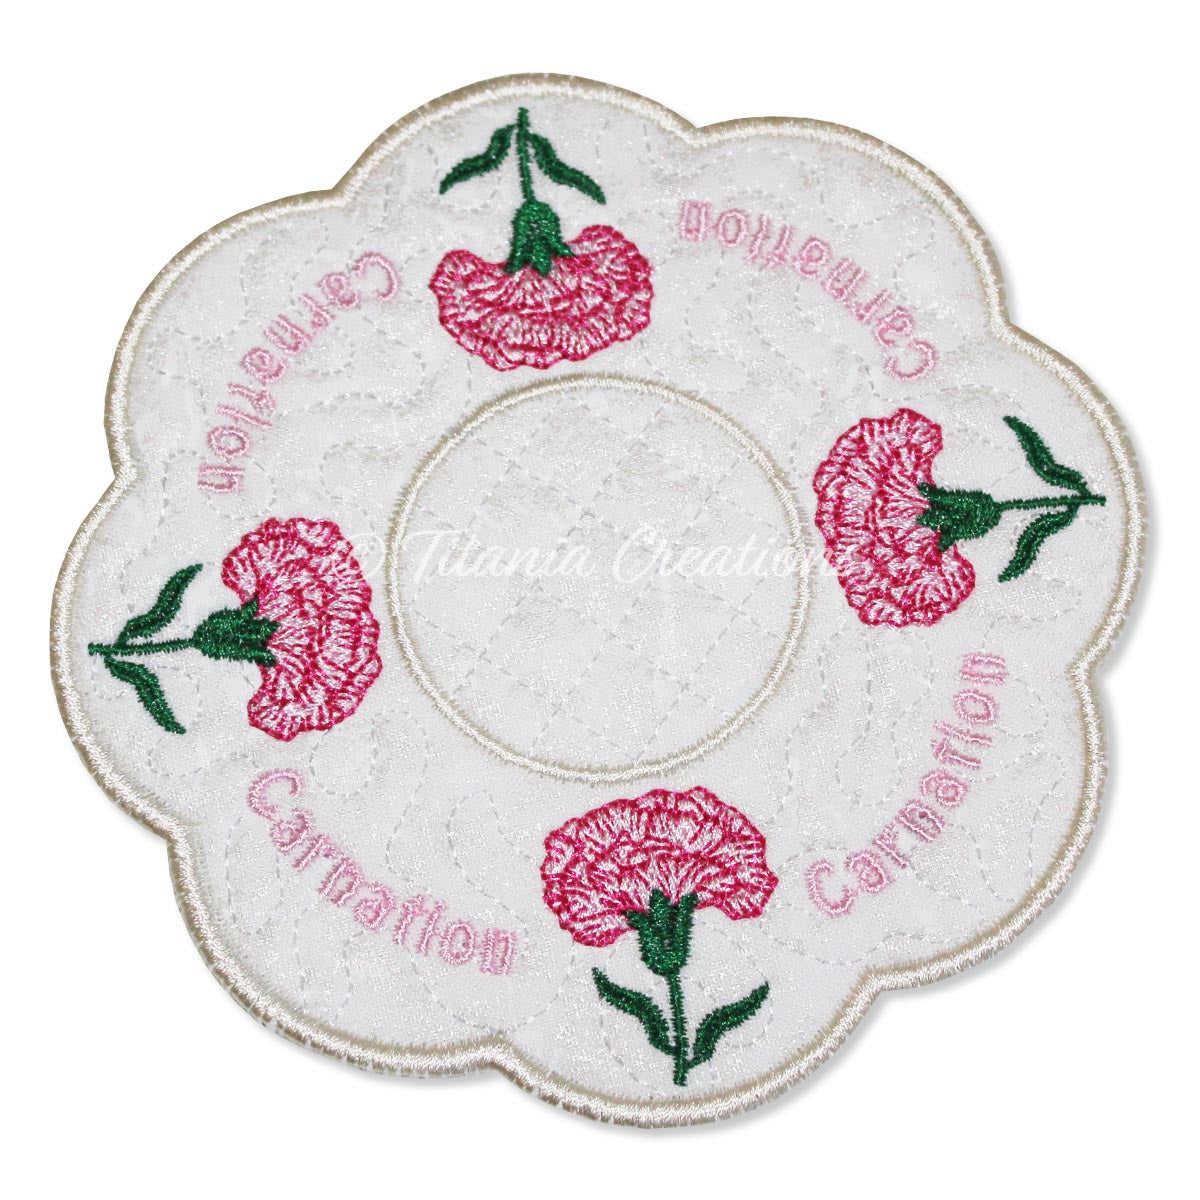 ITH Carnation January Flower Candle Mat 5x5 6x6 7x7 8x8